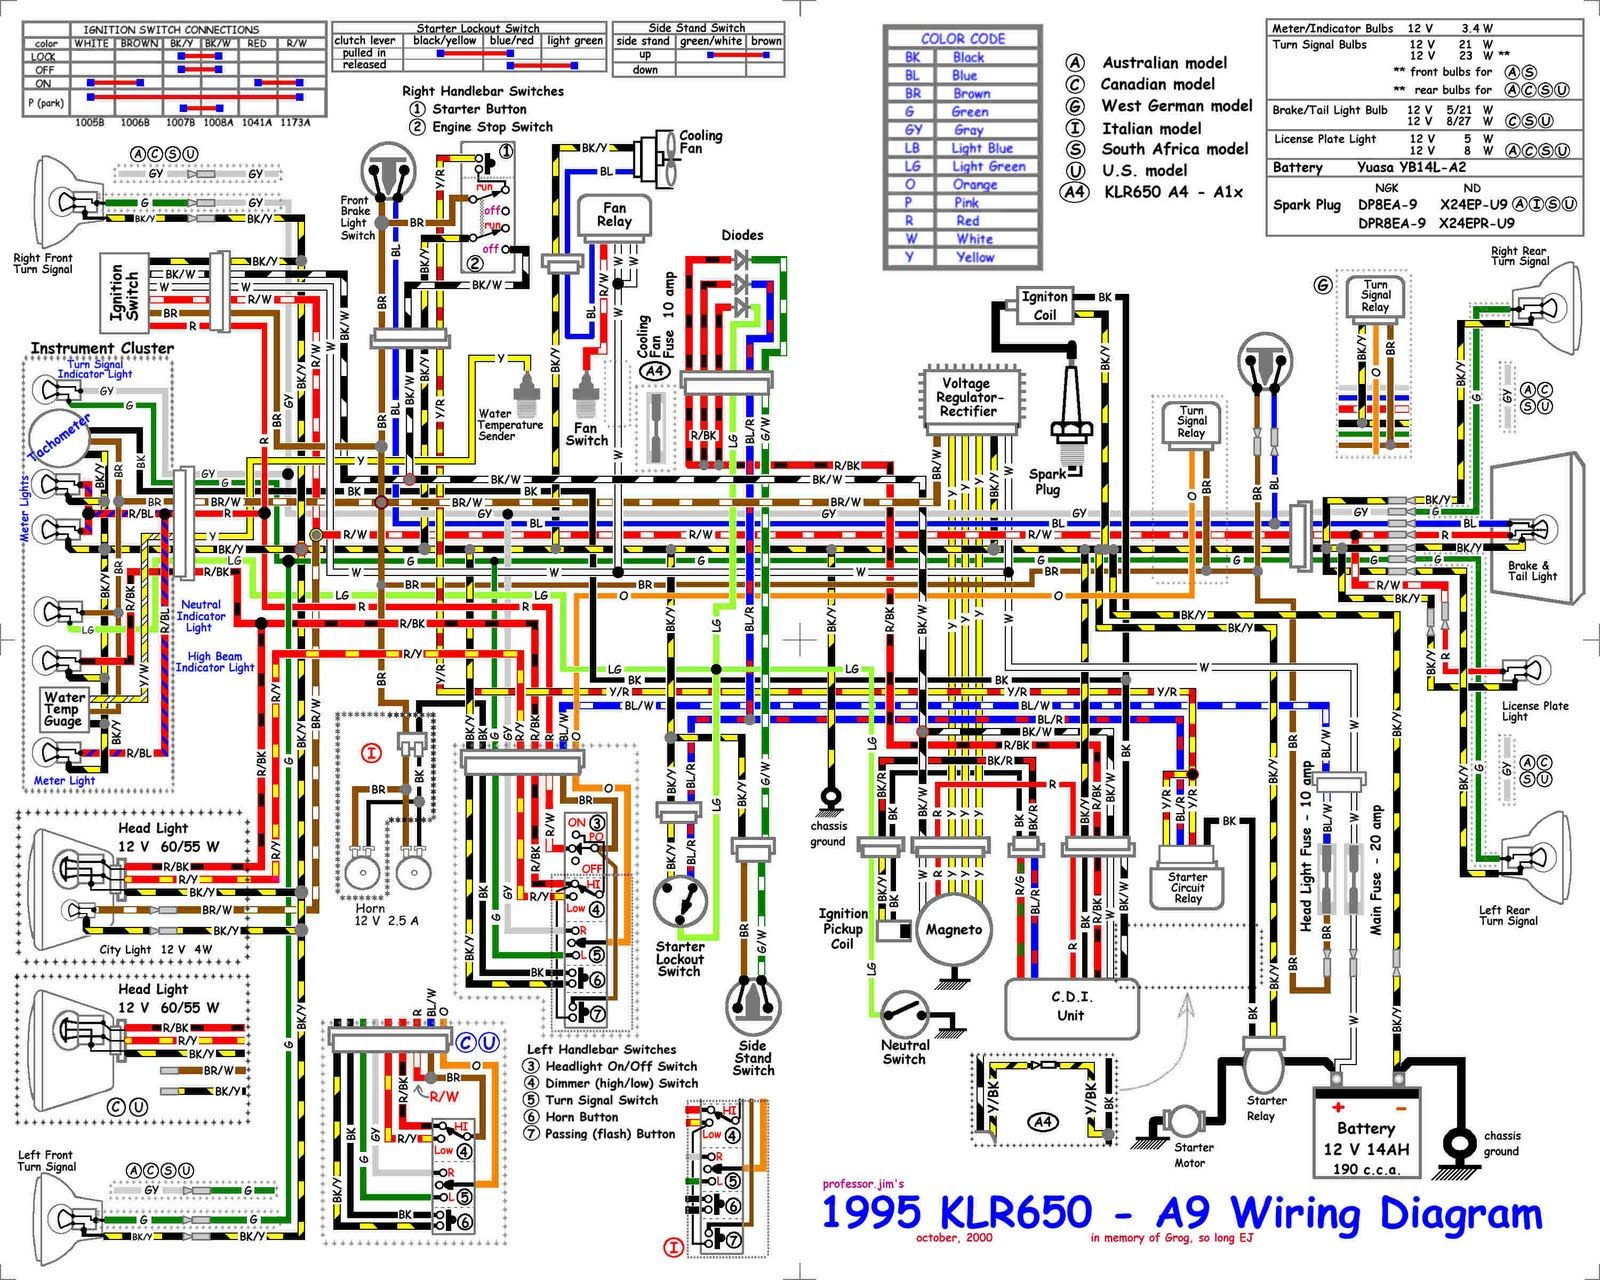 small resolution of 1986 monte carlo wiring diagram wiring diagram today1986 monte carlo wiring diagram wiring diagram forward 1986